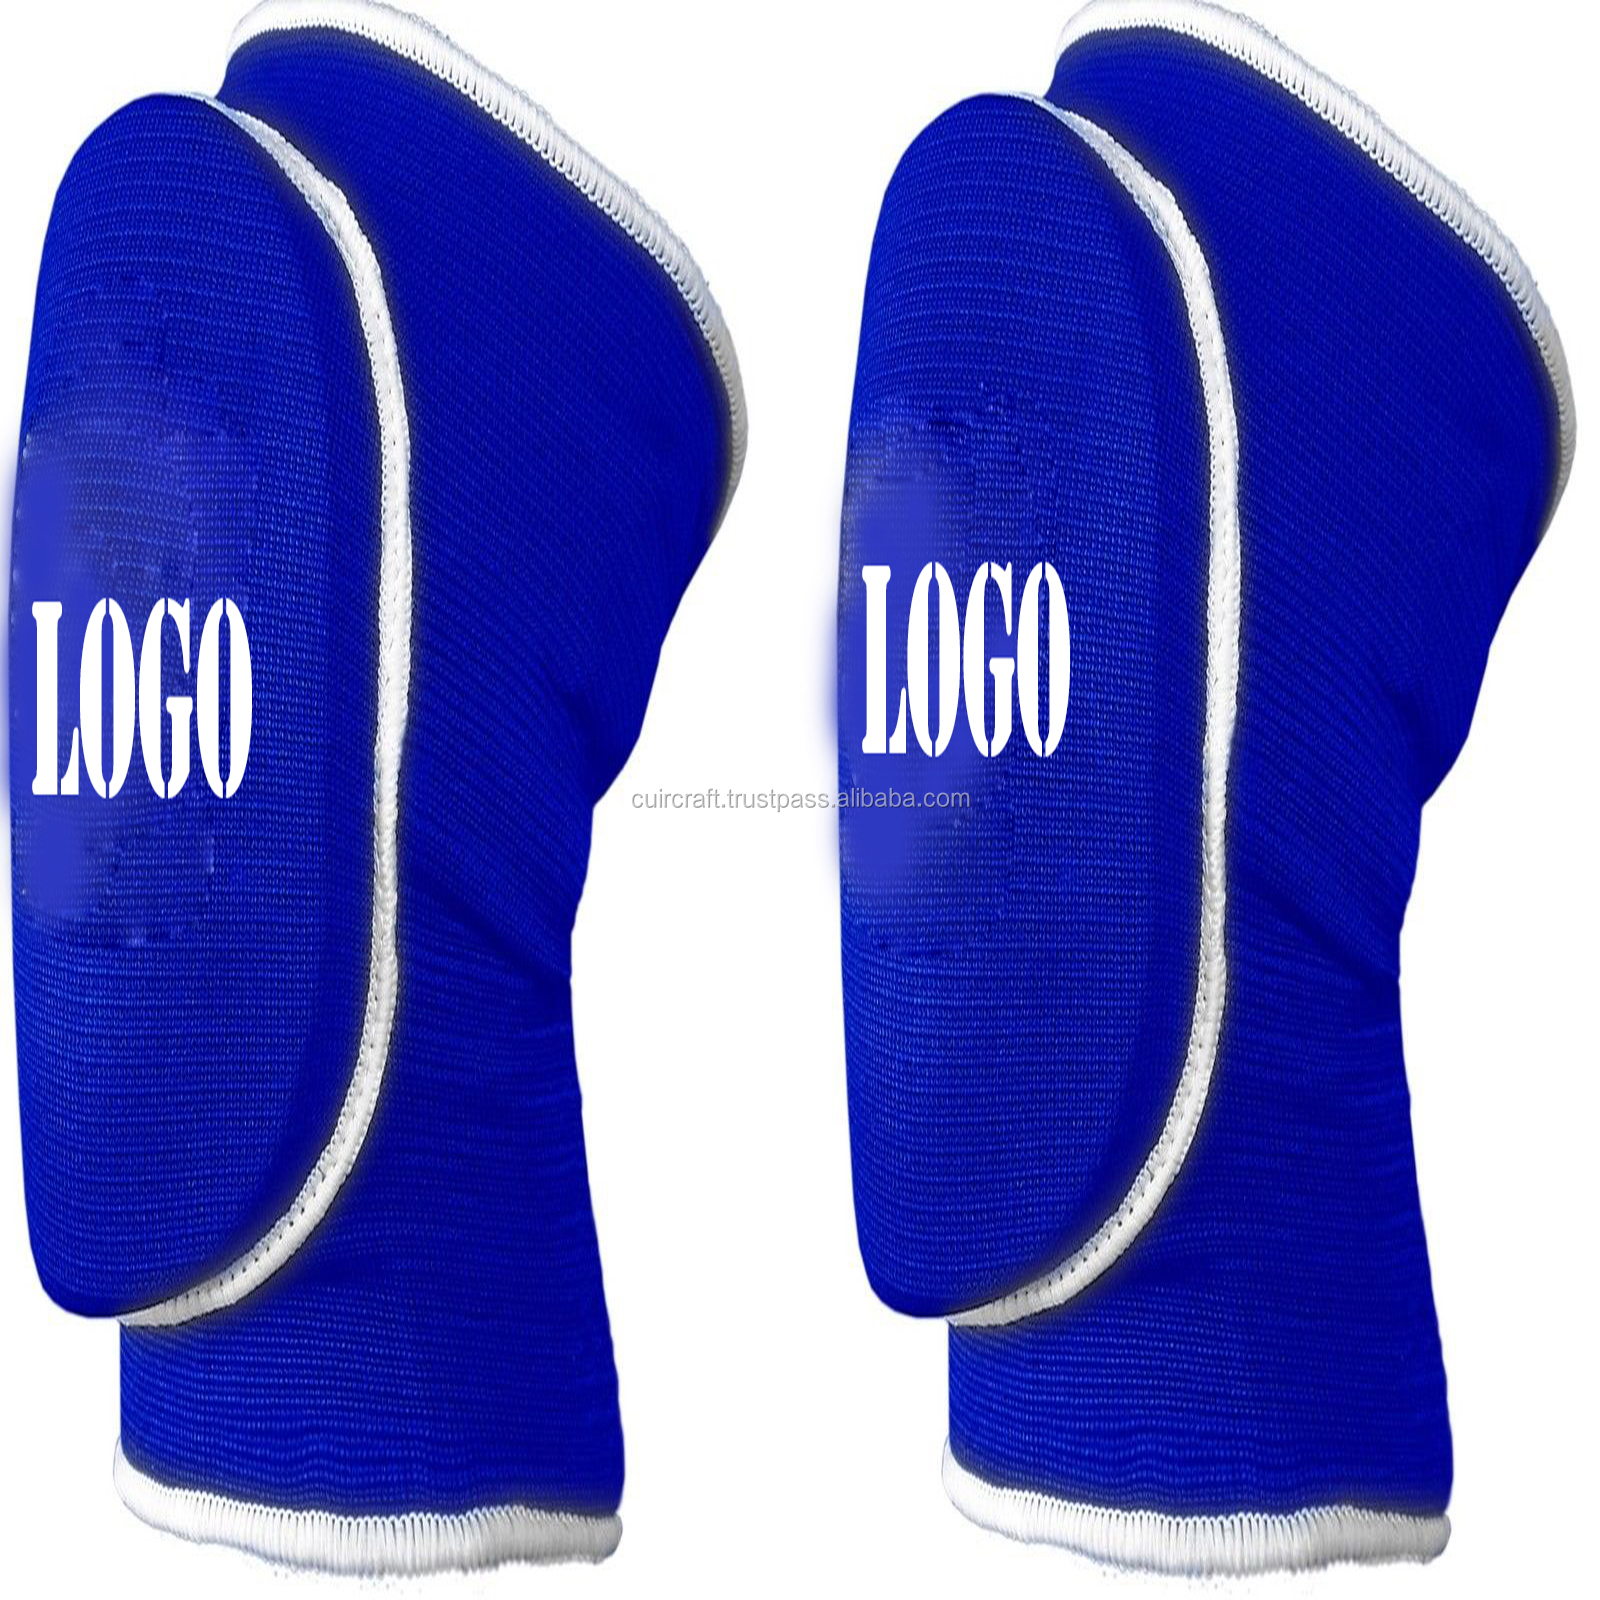 New Knee Pads MMA Volleyball Wrestling Padded Martial Art